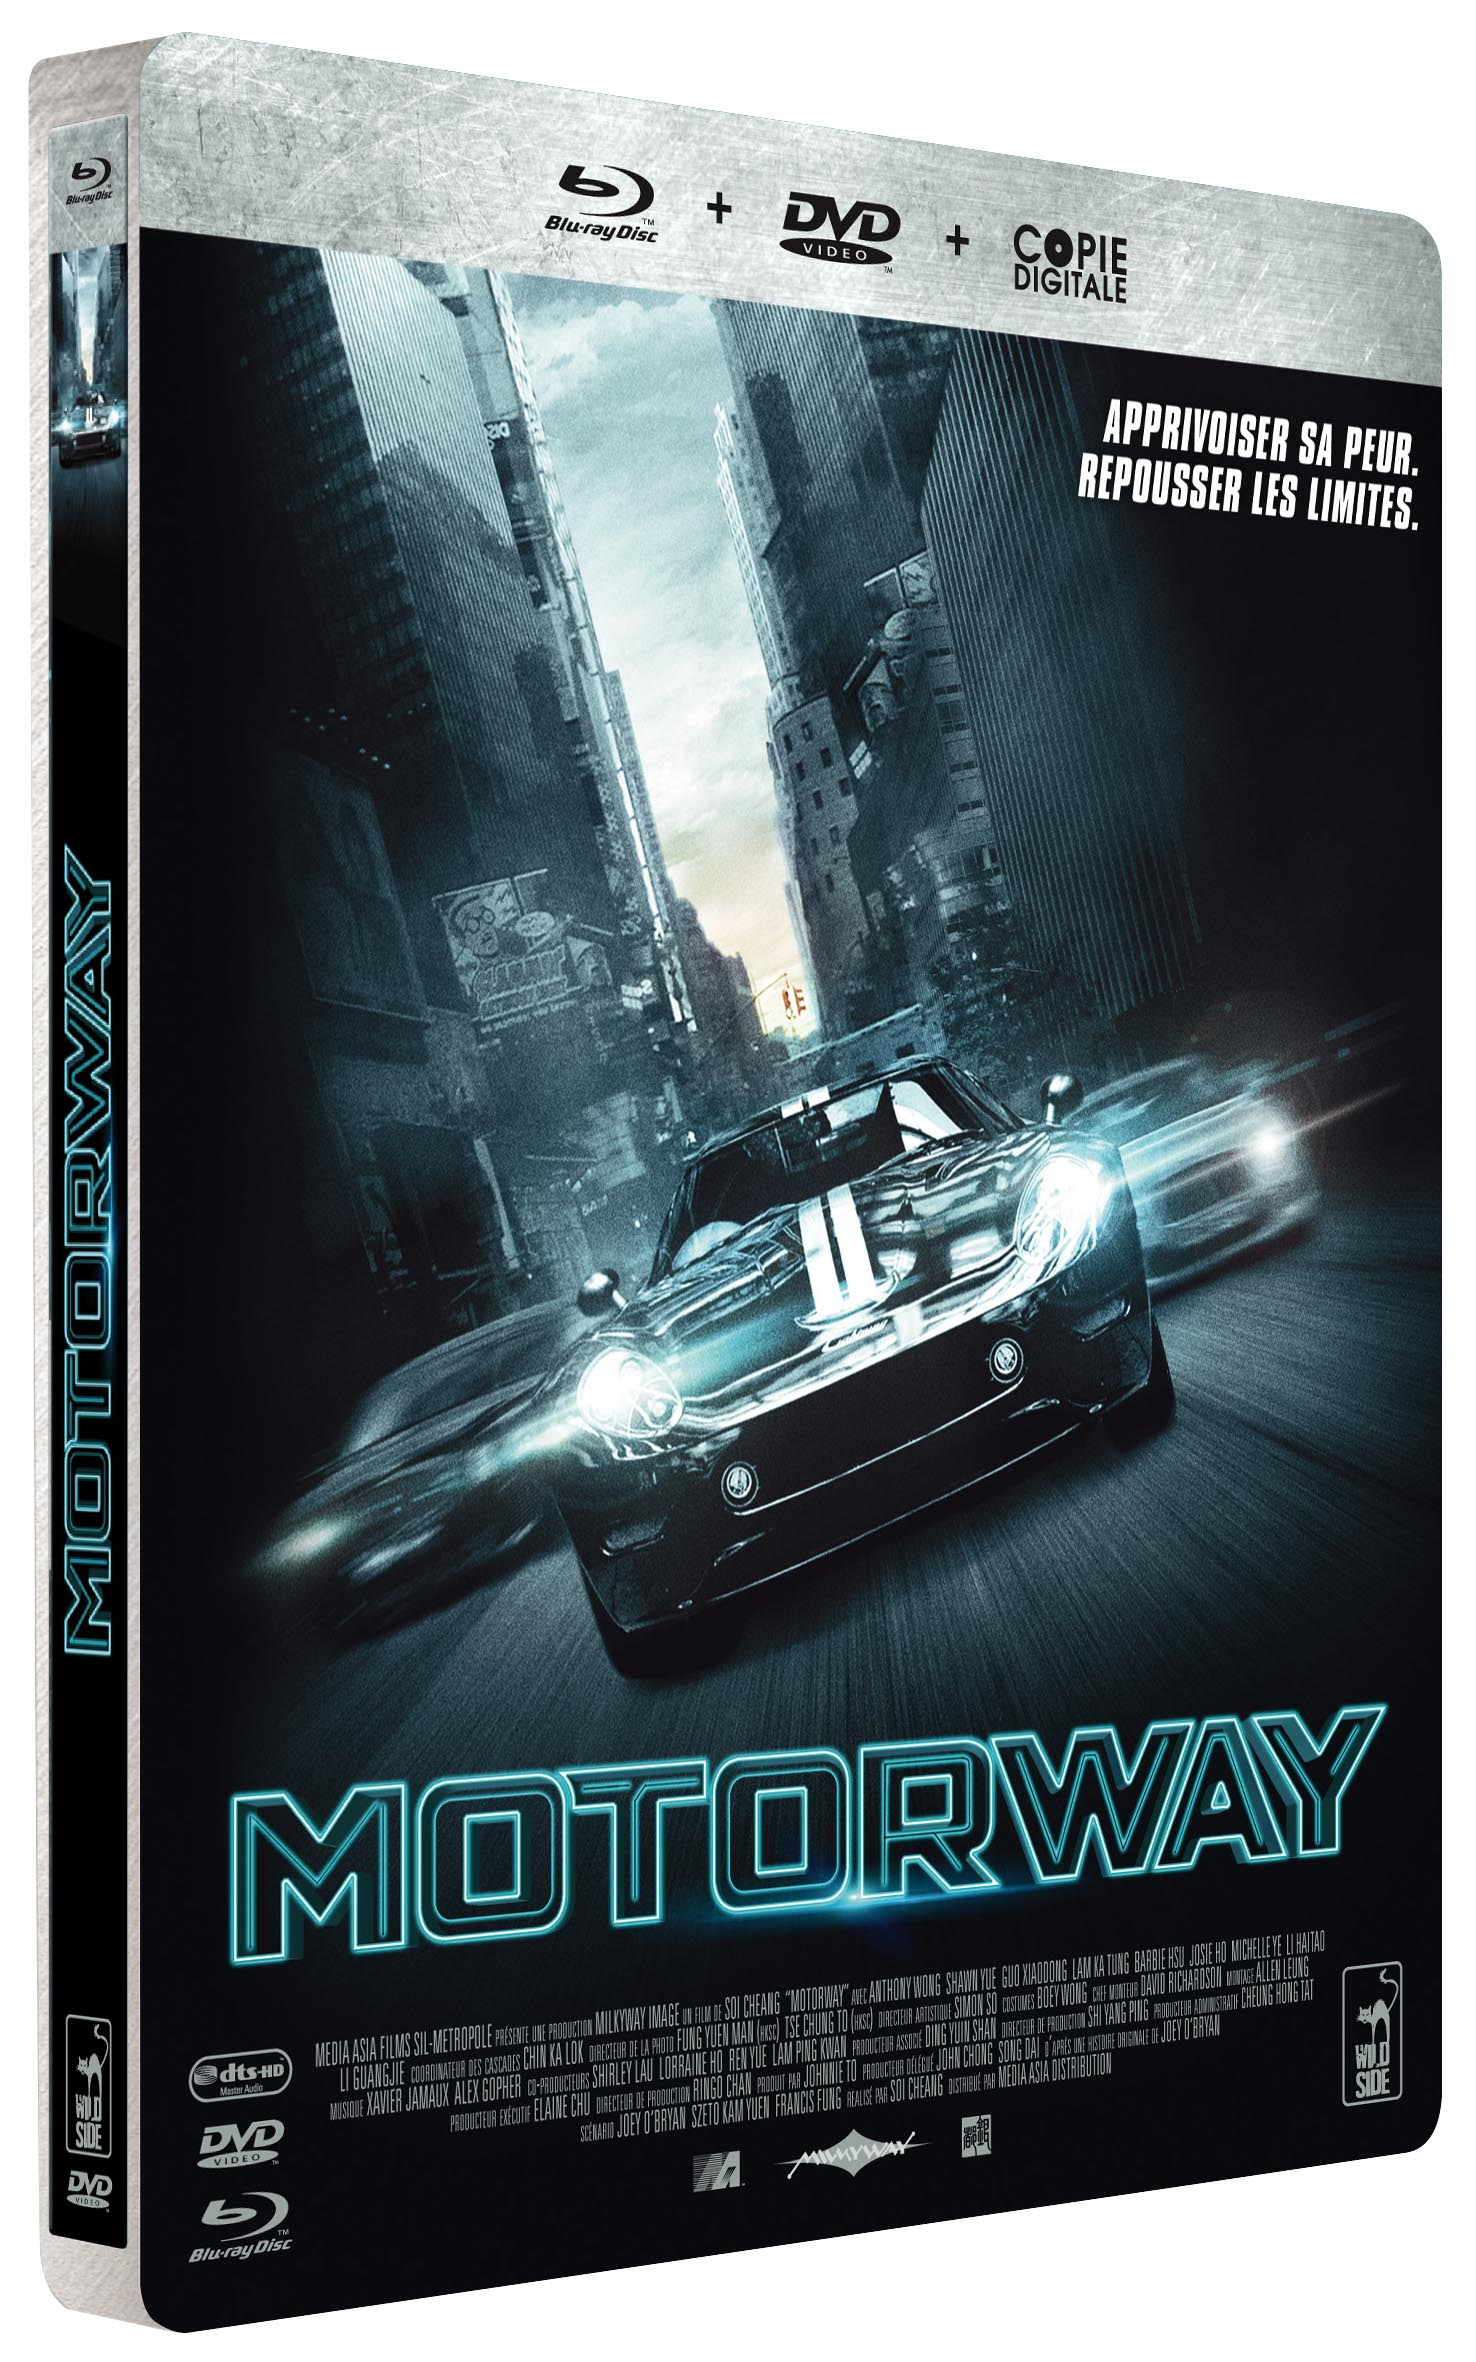 MOTORWAY-Blu-ray Combo Steelbook